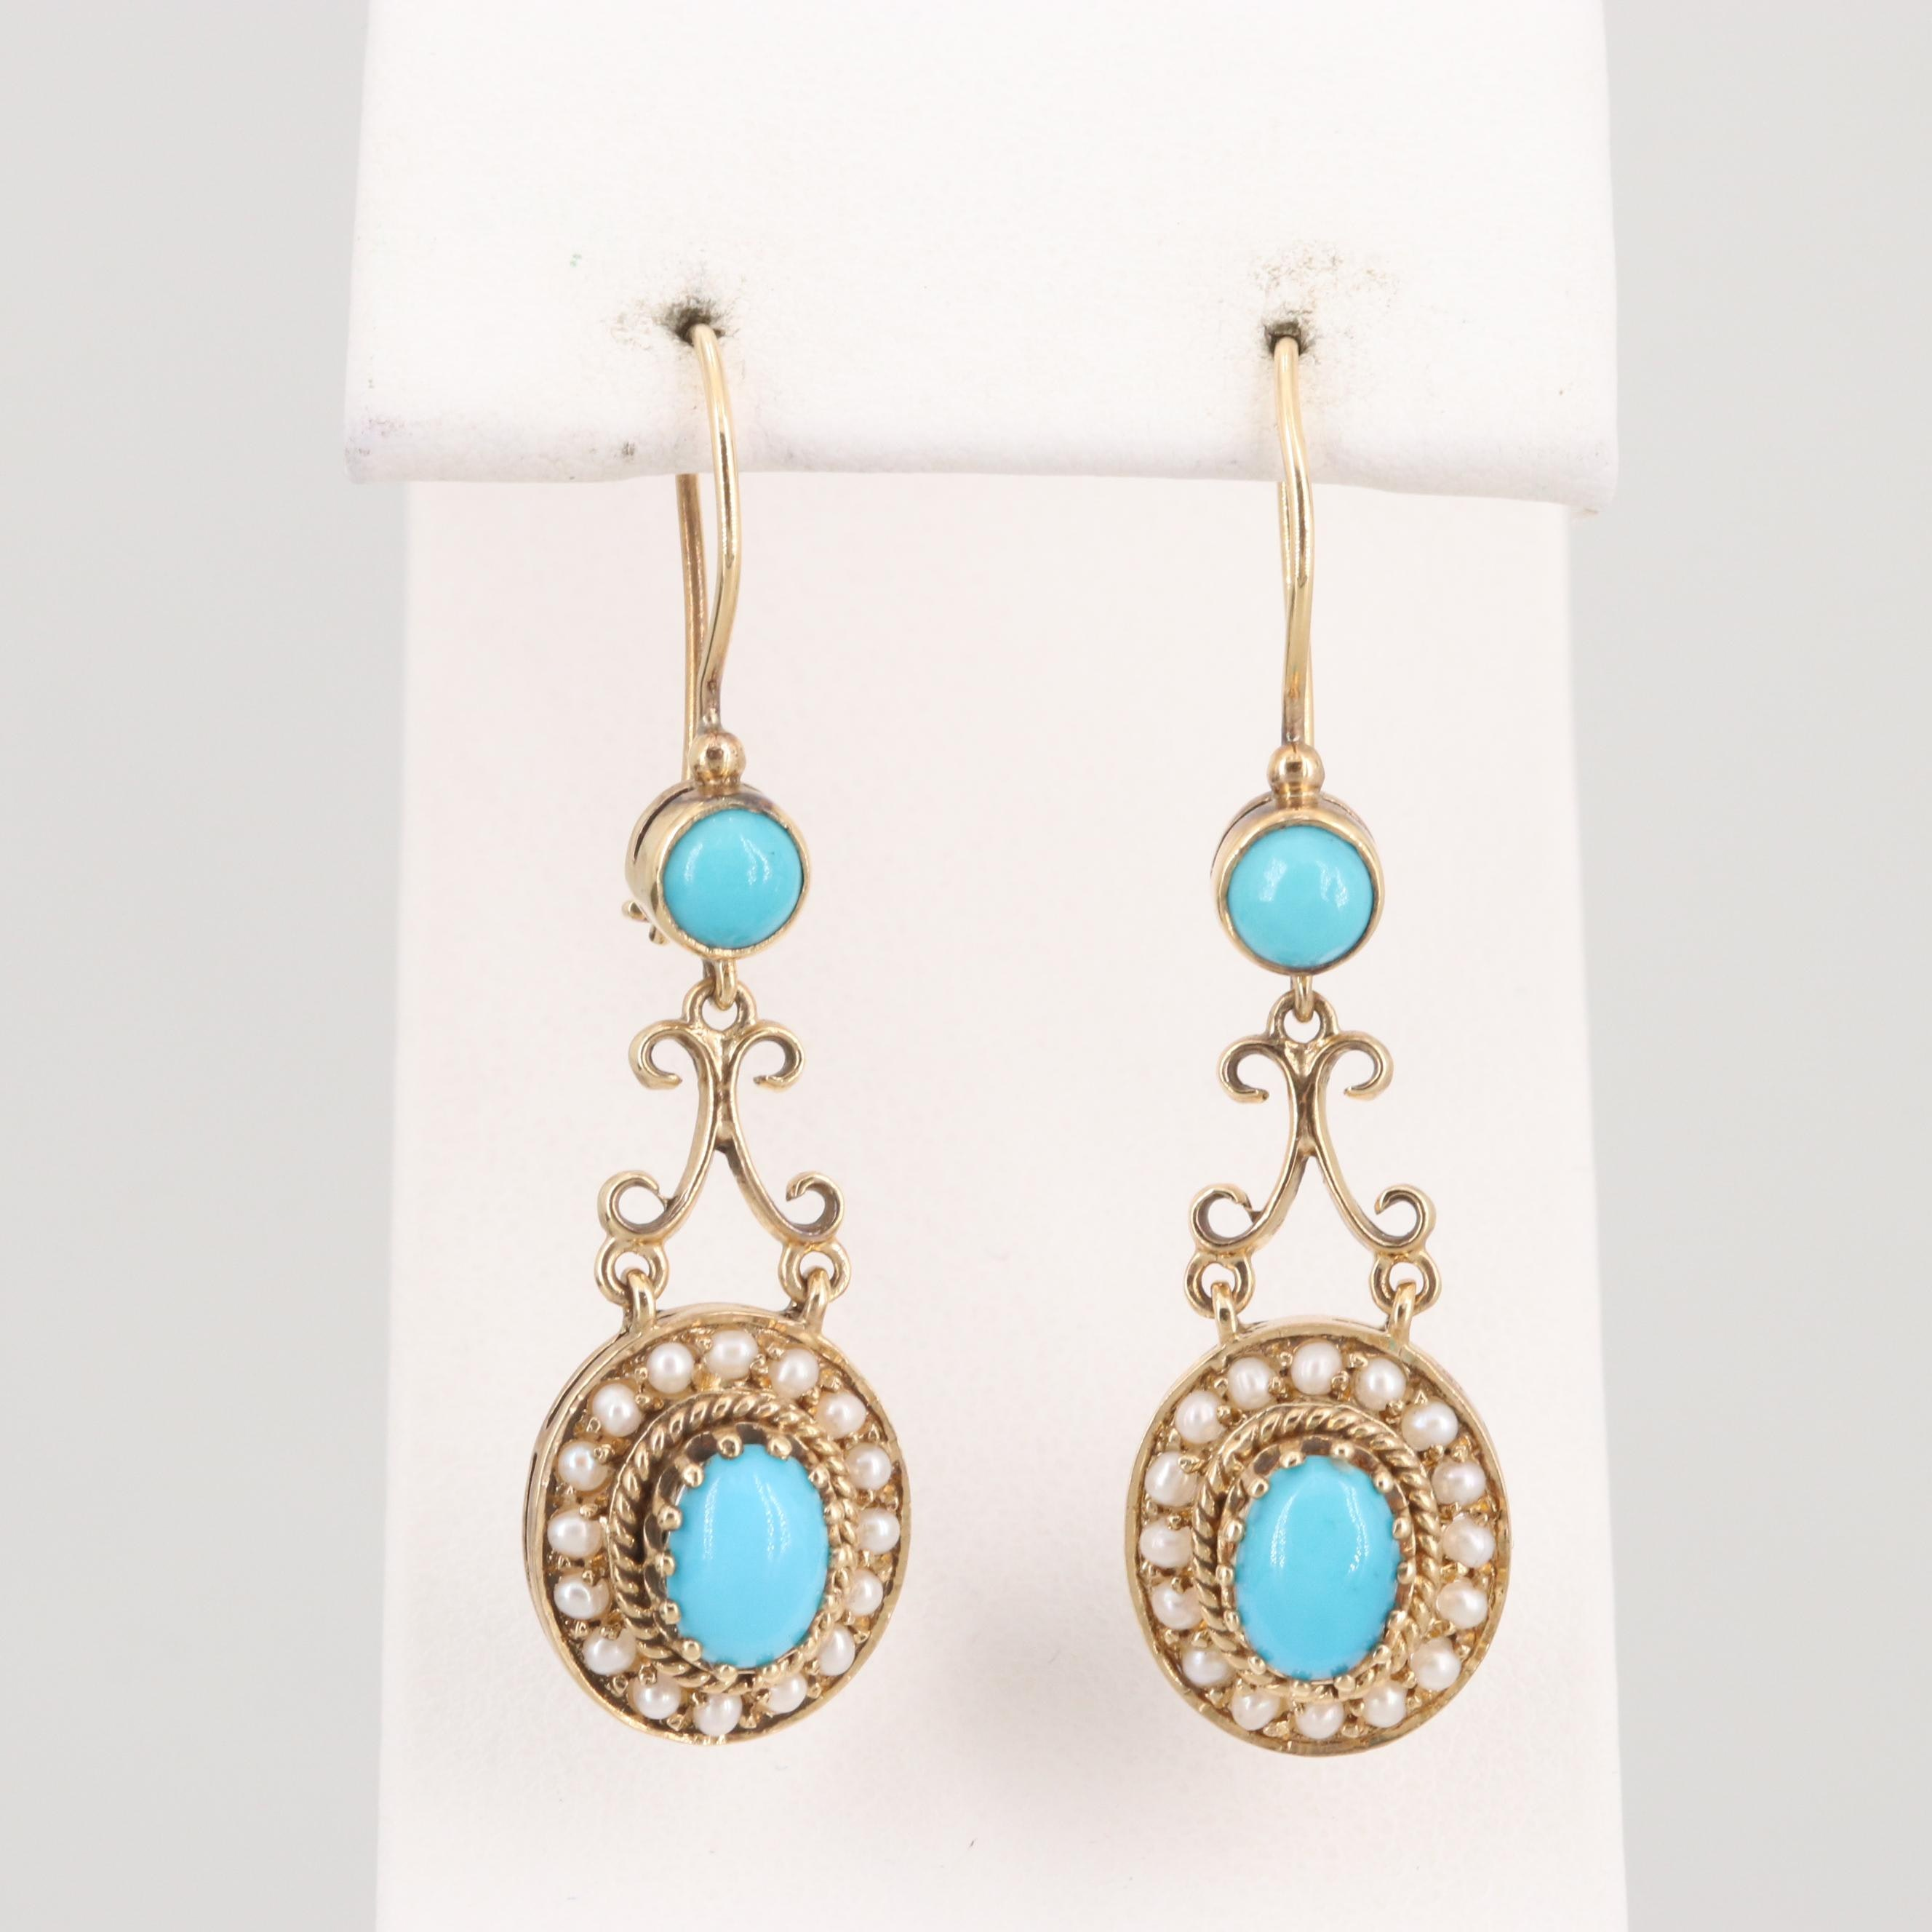 14K Yellow Gold Turquoise and Seed Pearl Dangle Drop Earrings